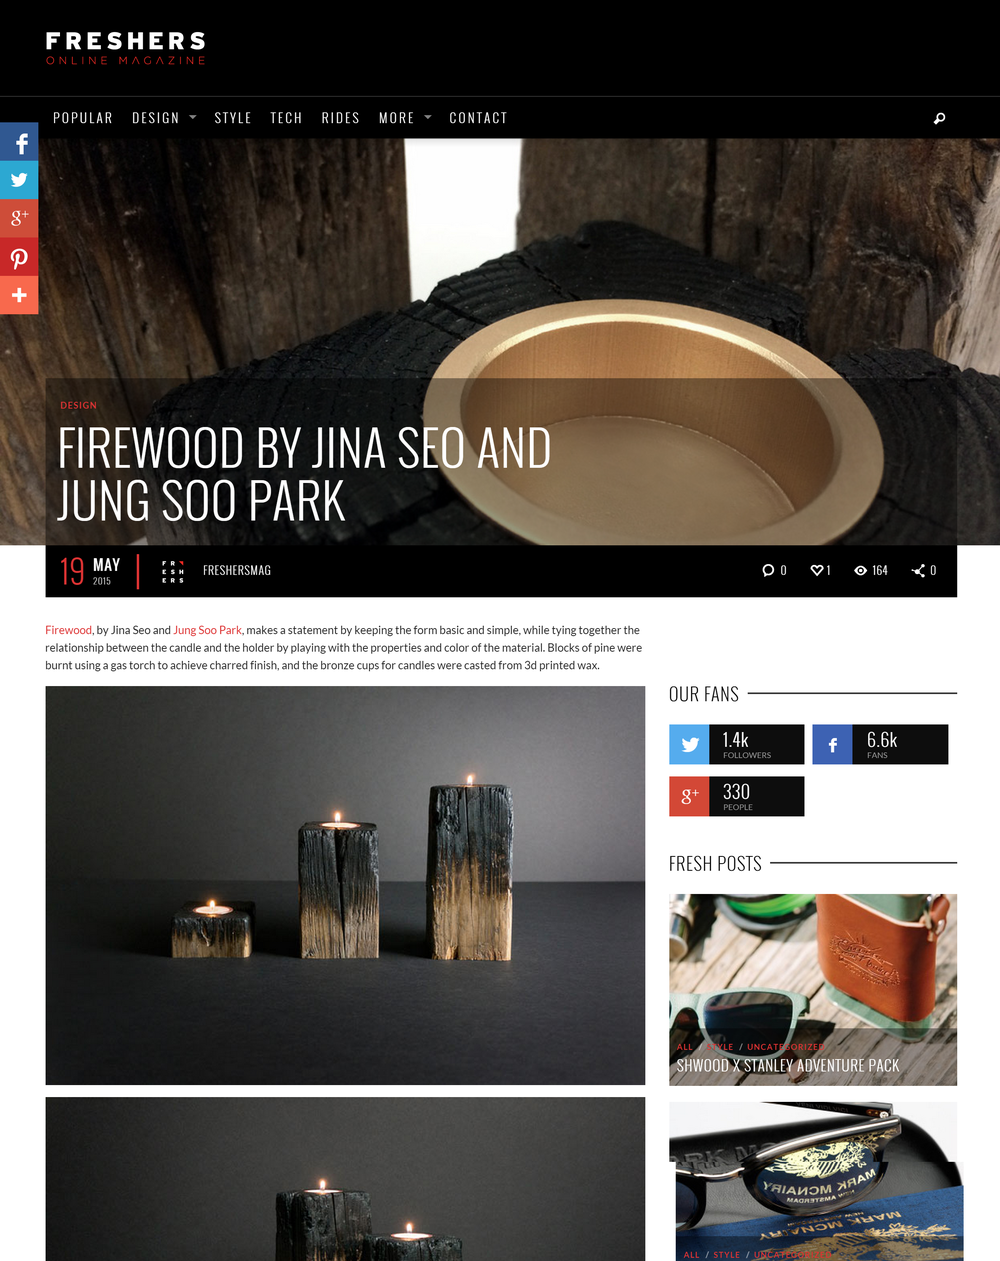 screencapture-freshersmag-com-firewood-by-jina-seo-and-jung-soo-park-1434735216356.png